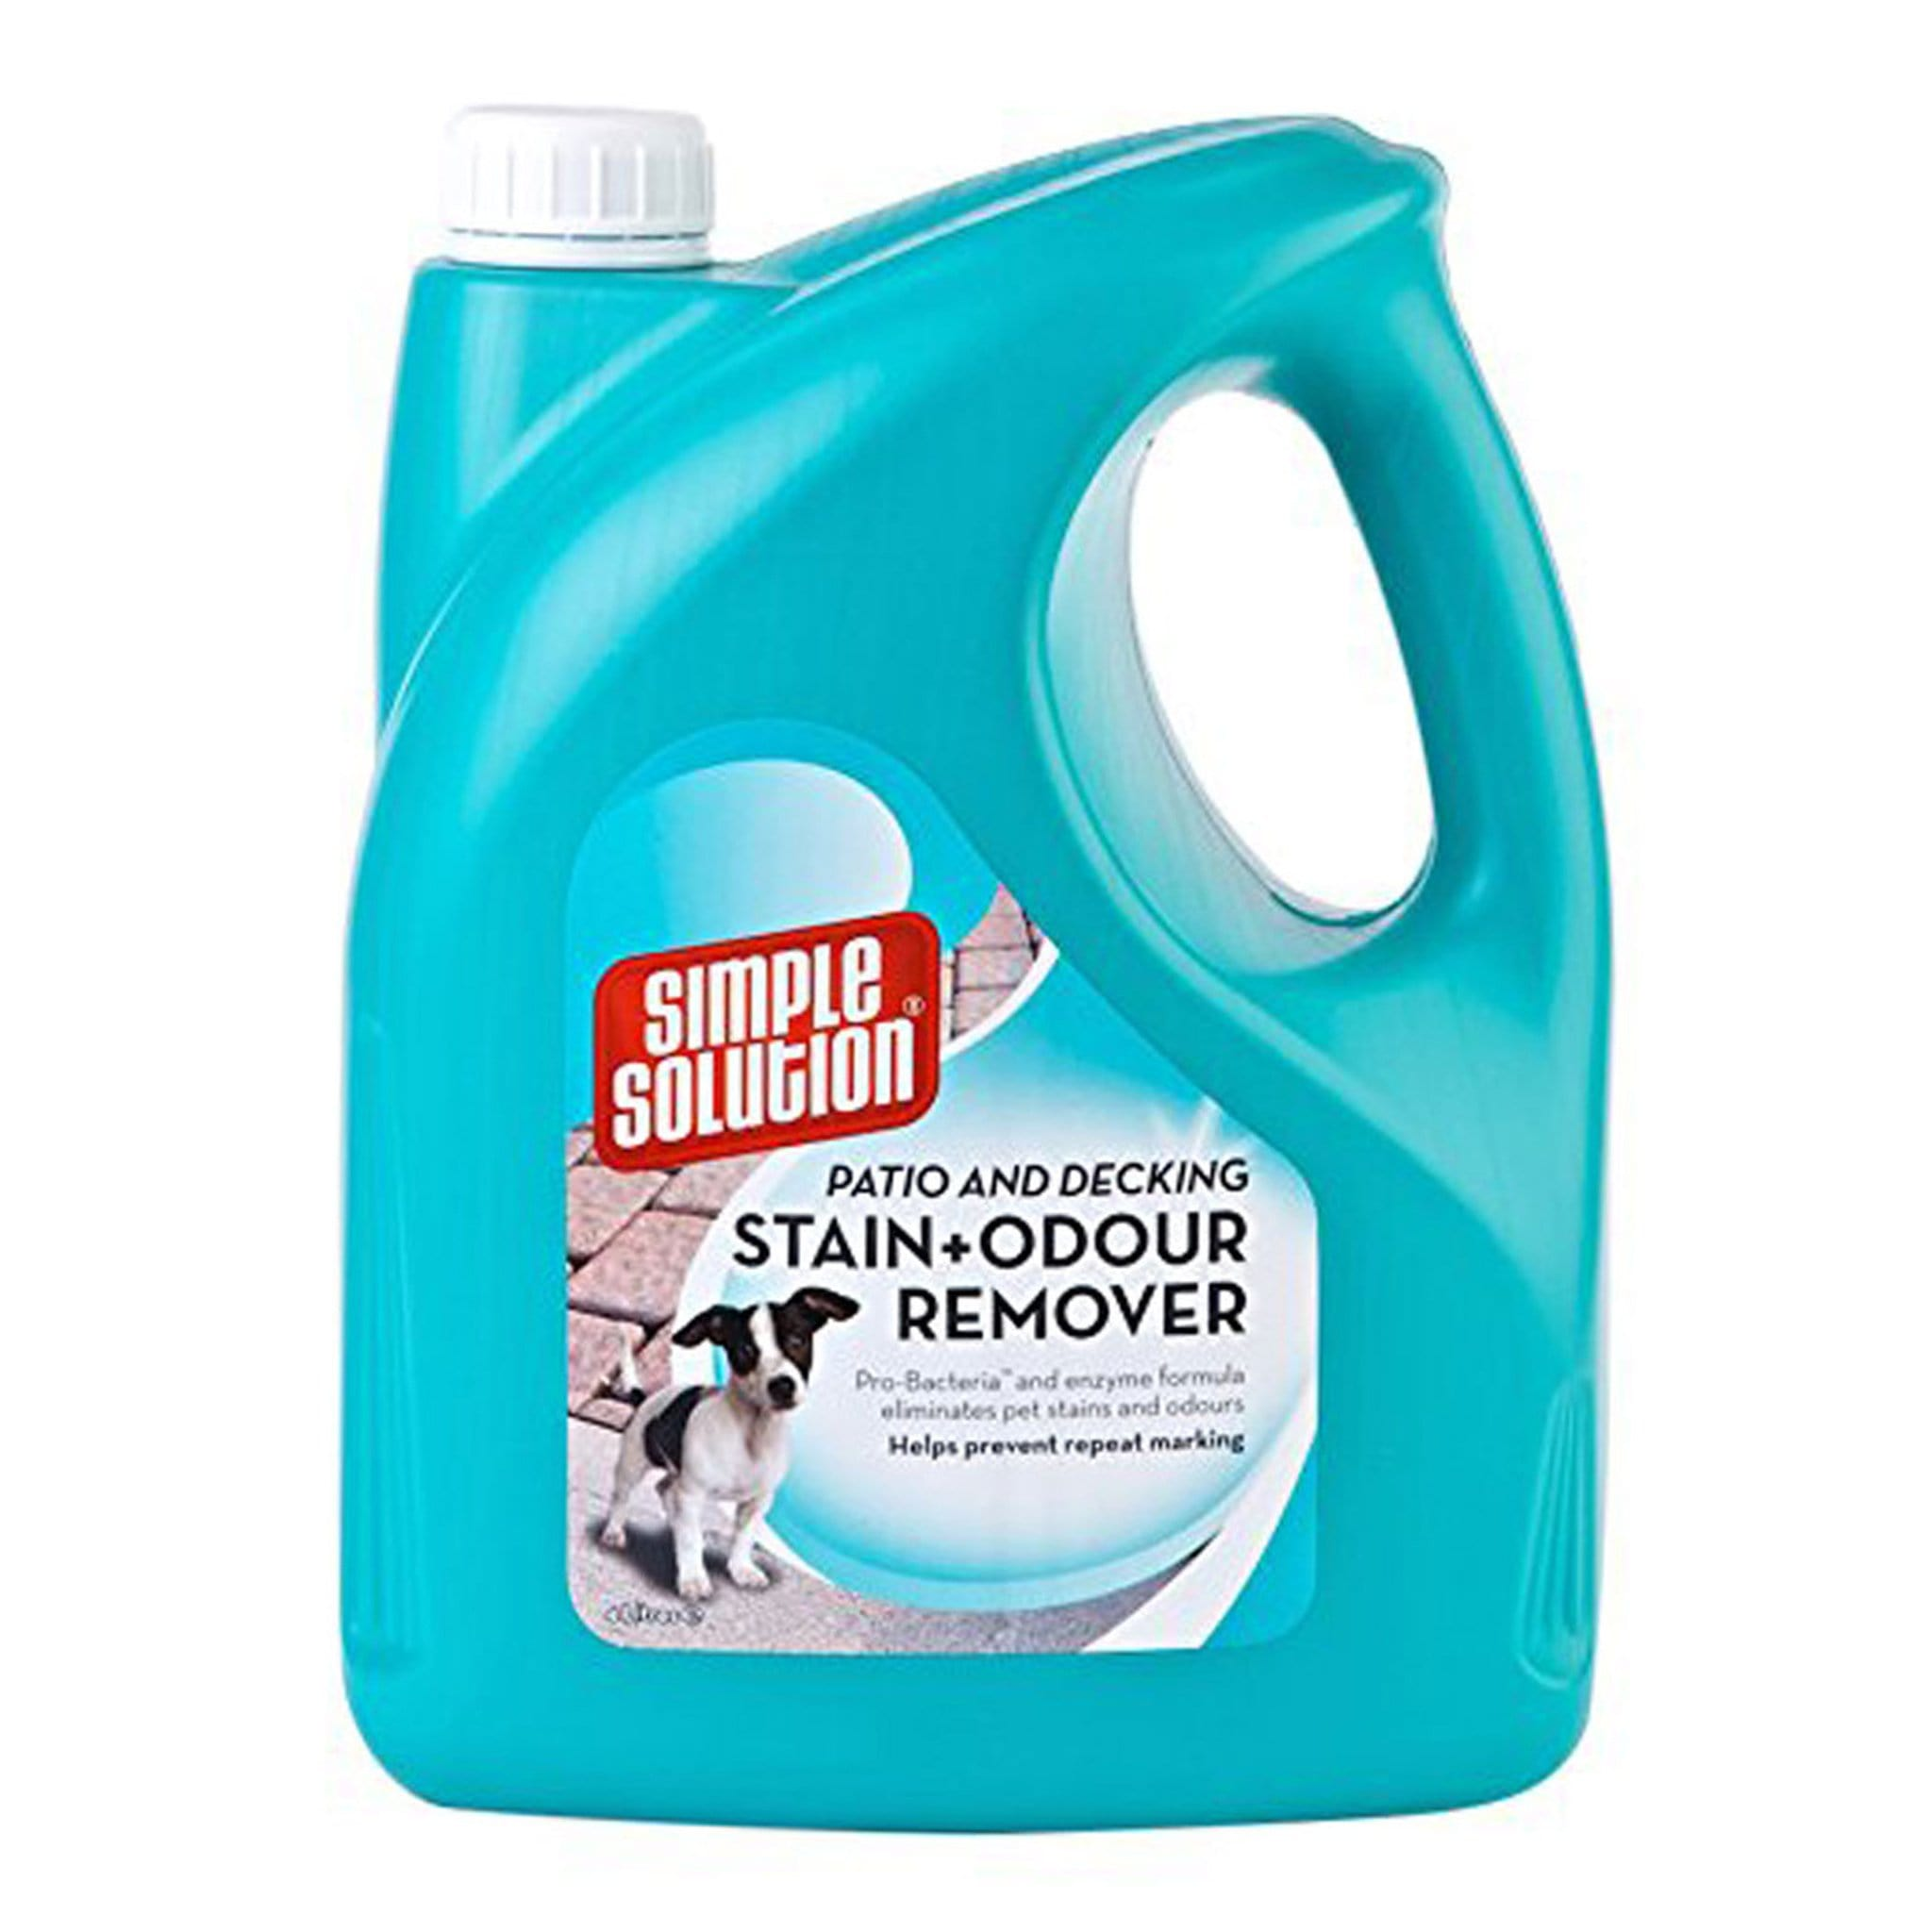 Simple Solution Patio and Deck Stain and Odour Remover 28634 4 Litre